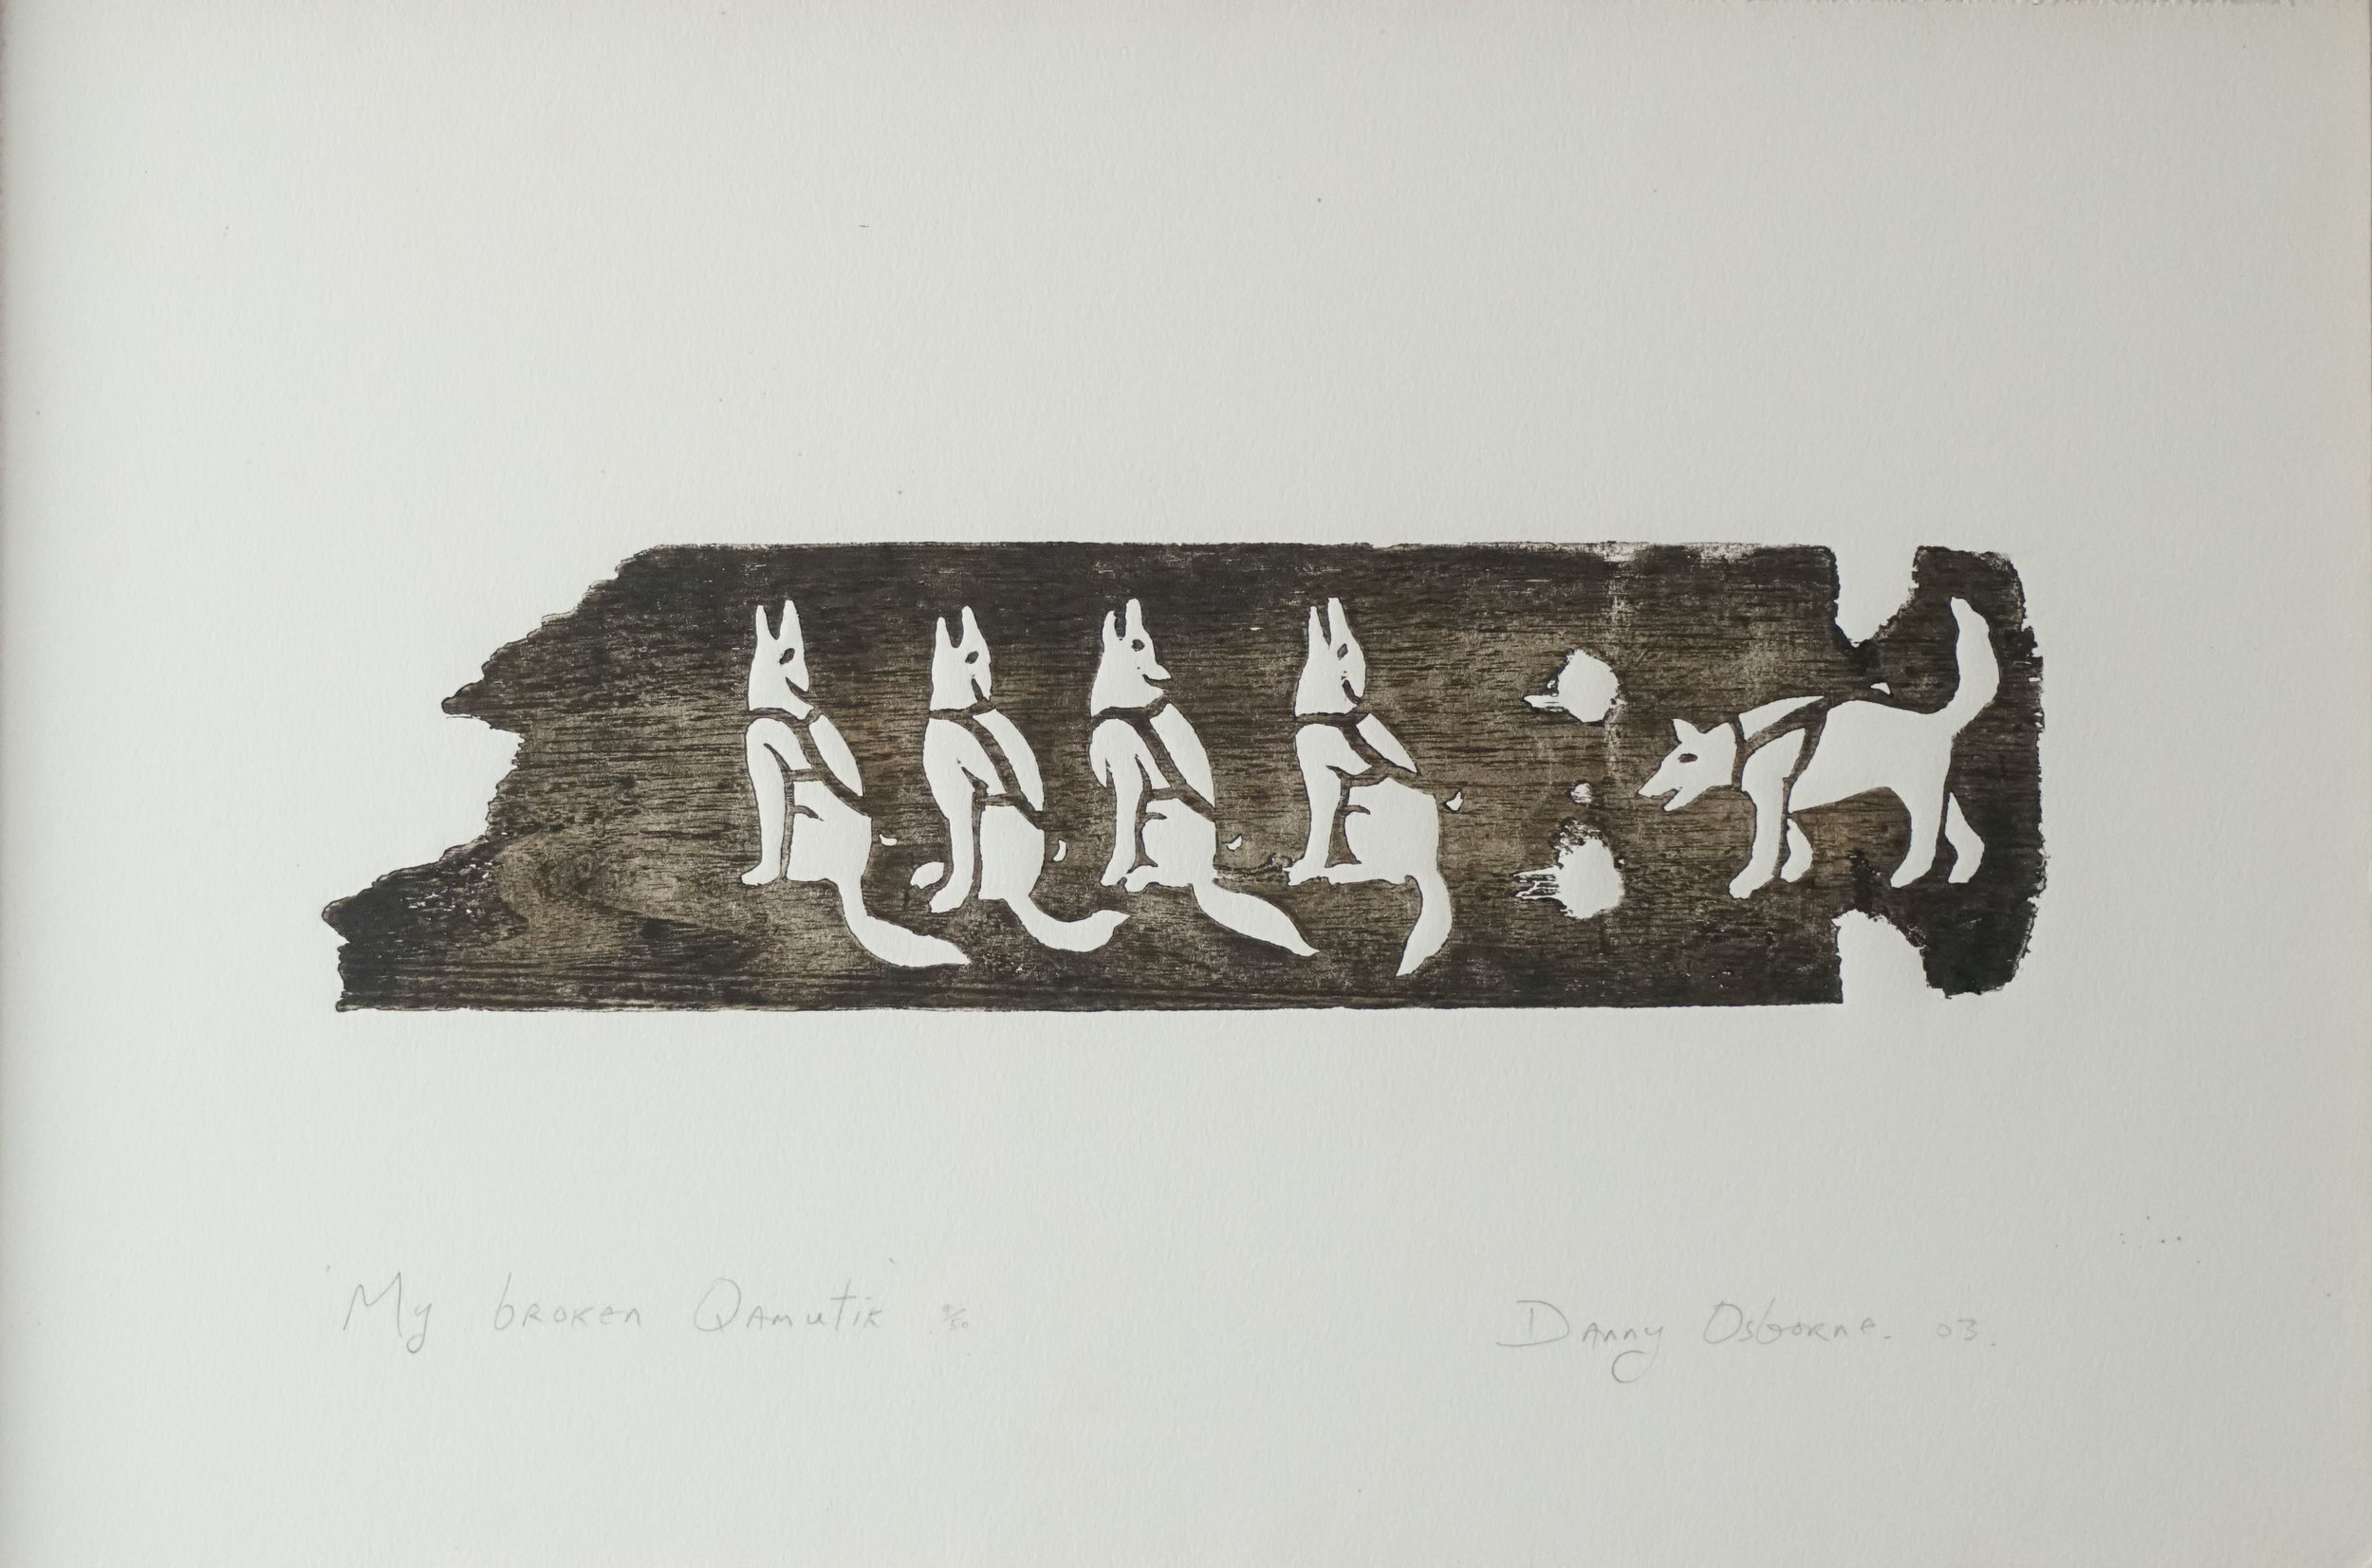 My Broken Qamutik, Woodcut, 2003.